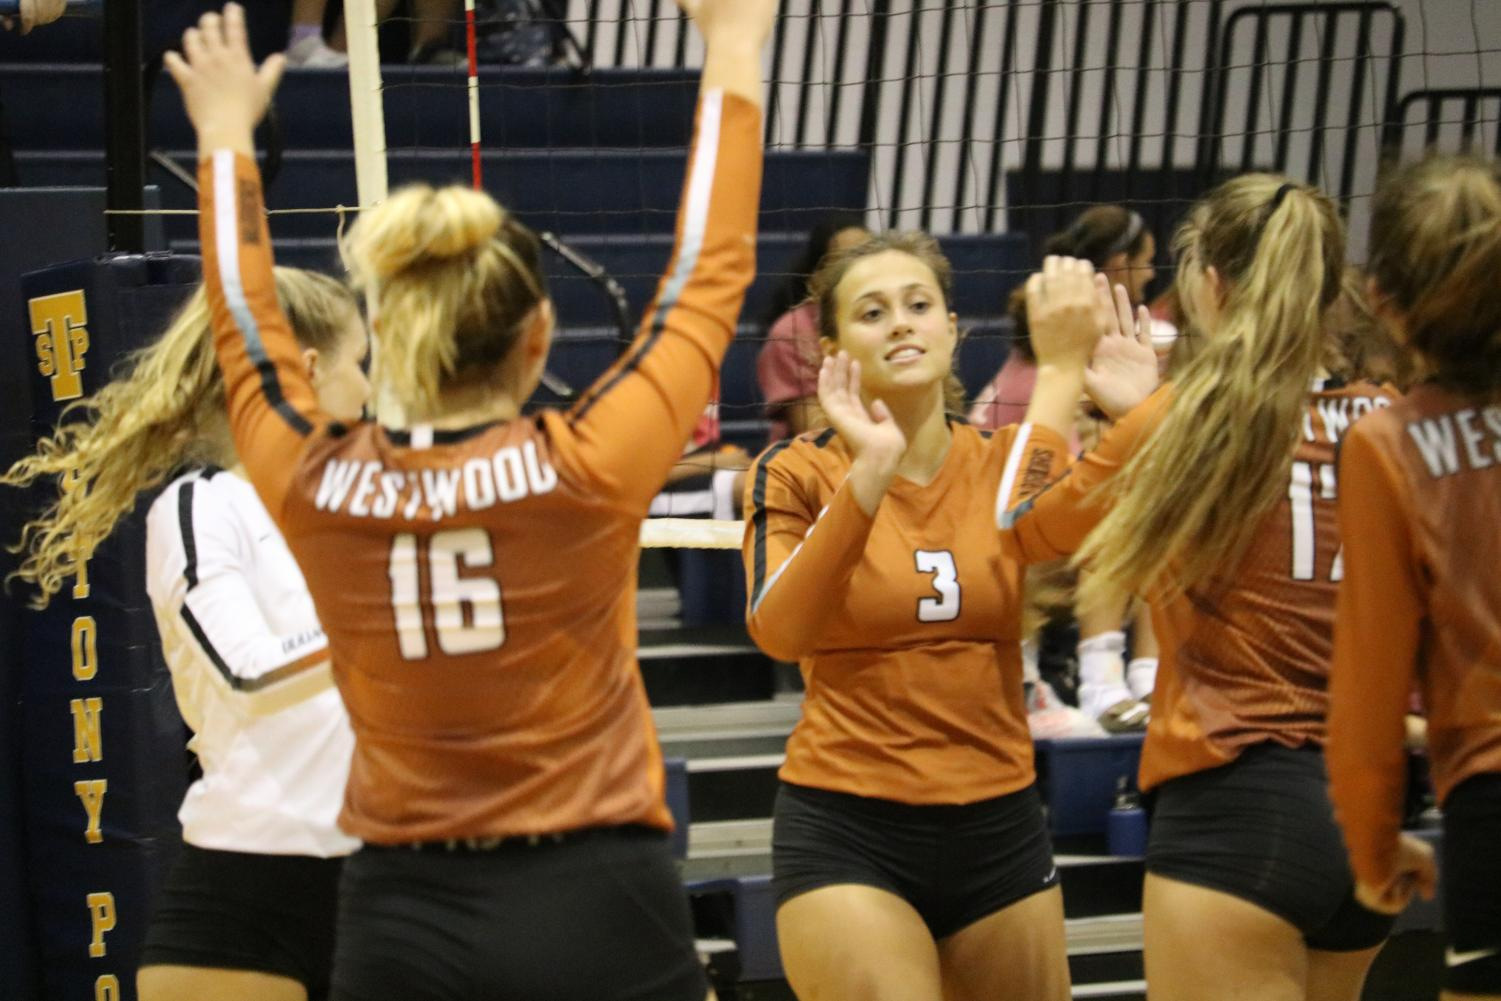 The team celebrates winning their second set of the game. The game ended with the Warriors winning all three sets.